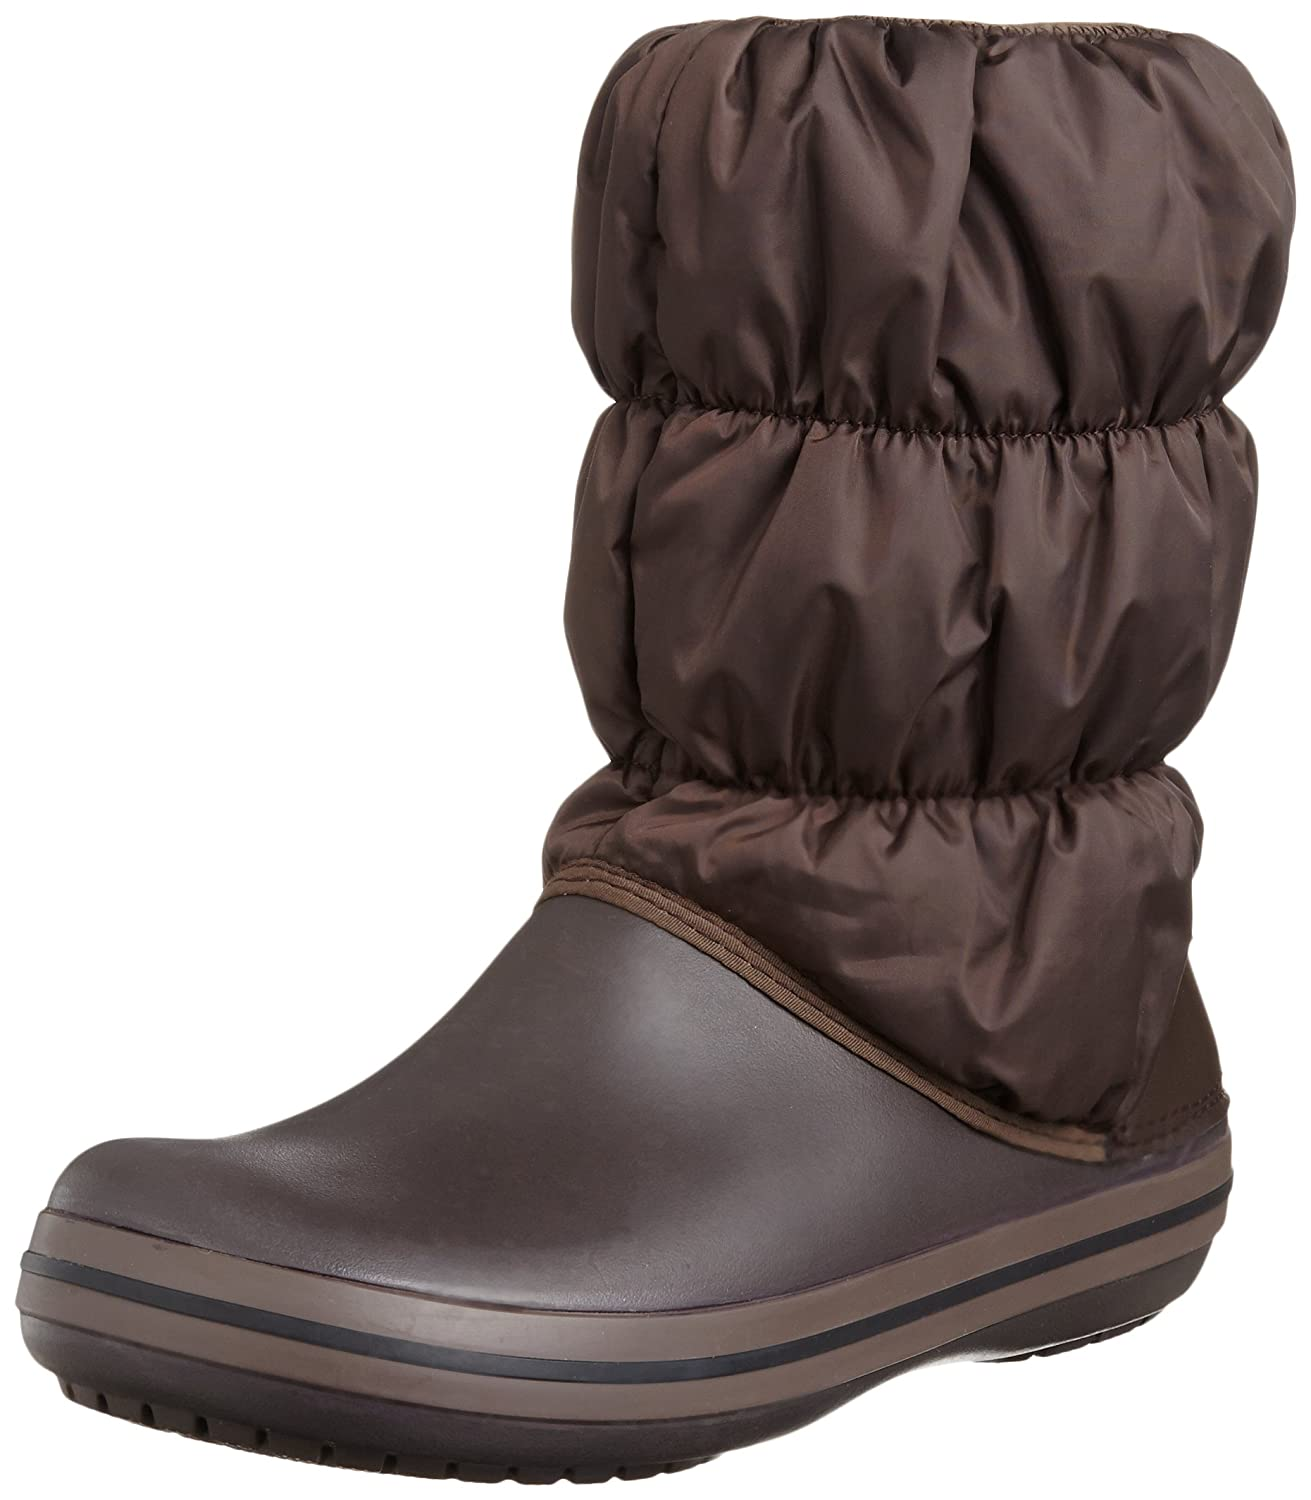 Crocs Women's Winter Puff Boot B007PY0Q4O 8 M US|Espresso/Espresso